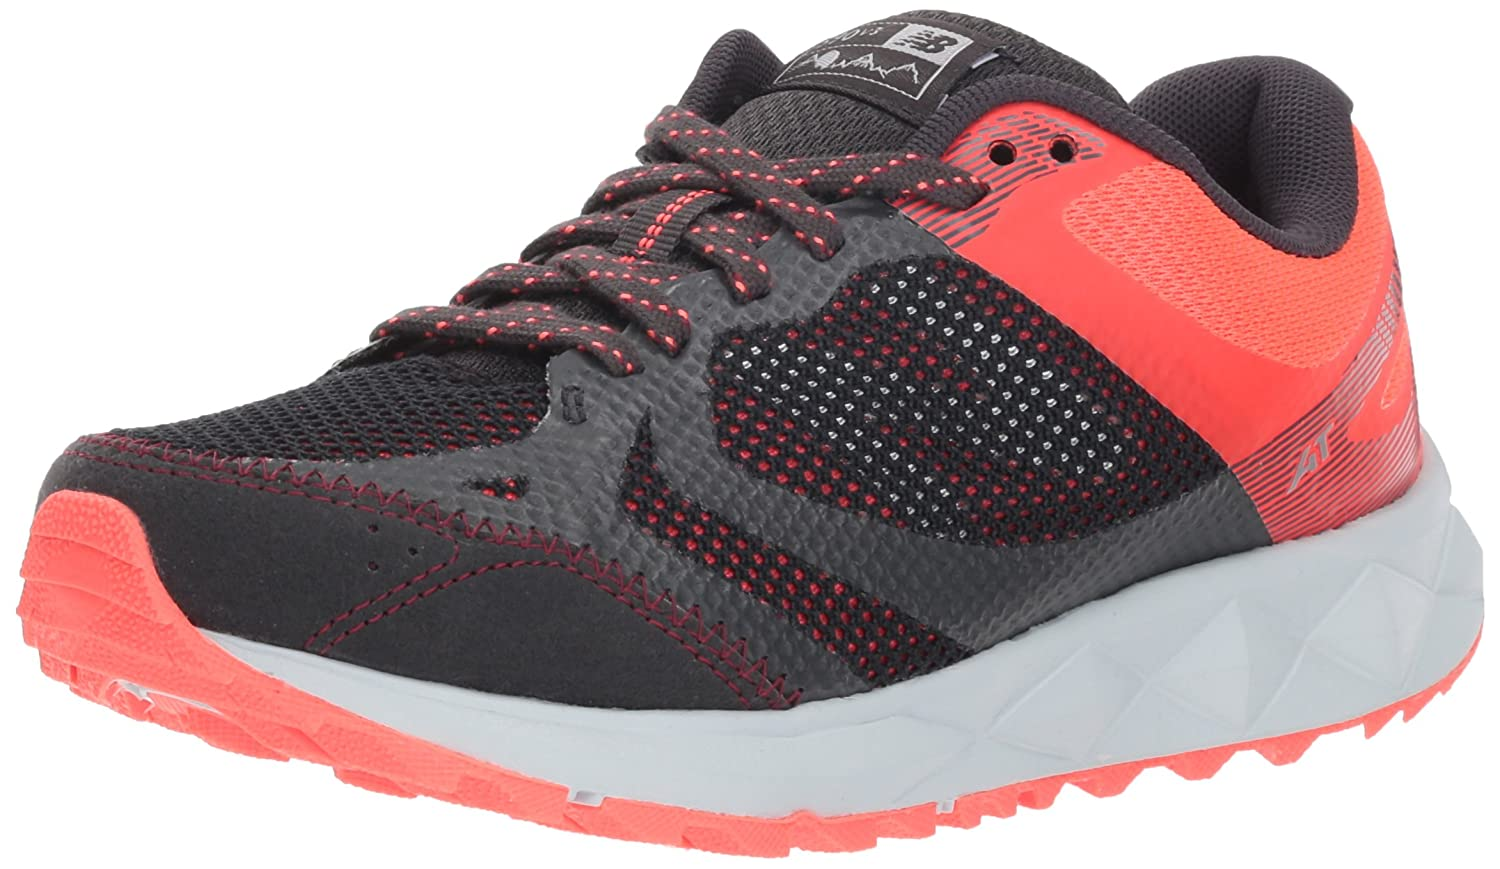 New Balance Women's 590v3 Running Shoe B077MT7T9Y 8.5 D US|Black/Pink